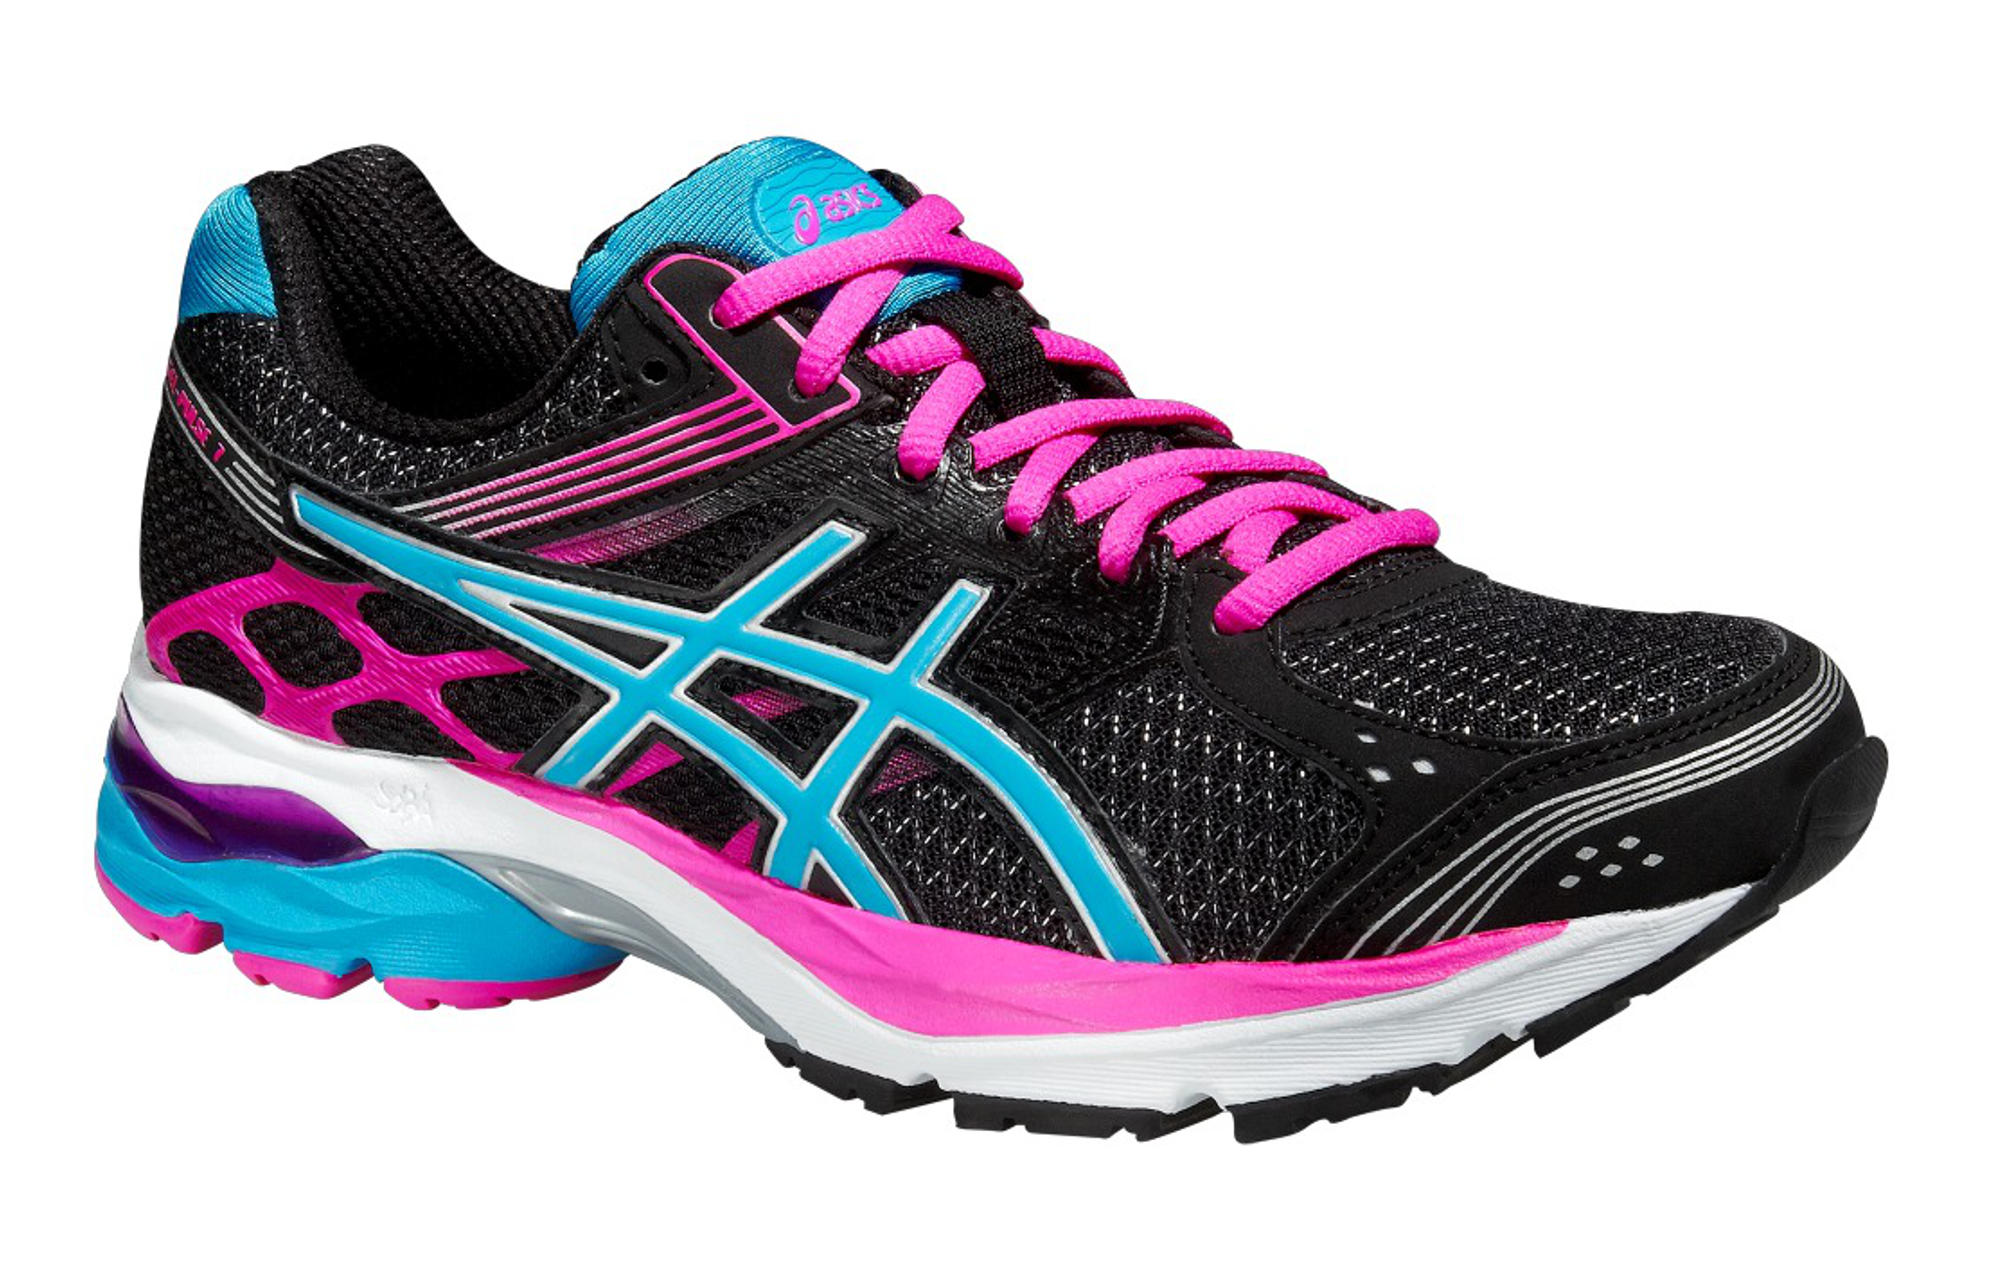 asics-gel-pulse-7-womens-running-black-pink-blue